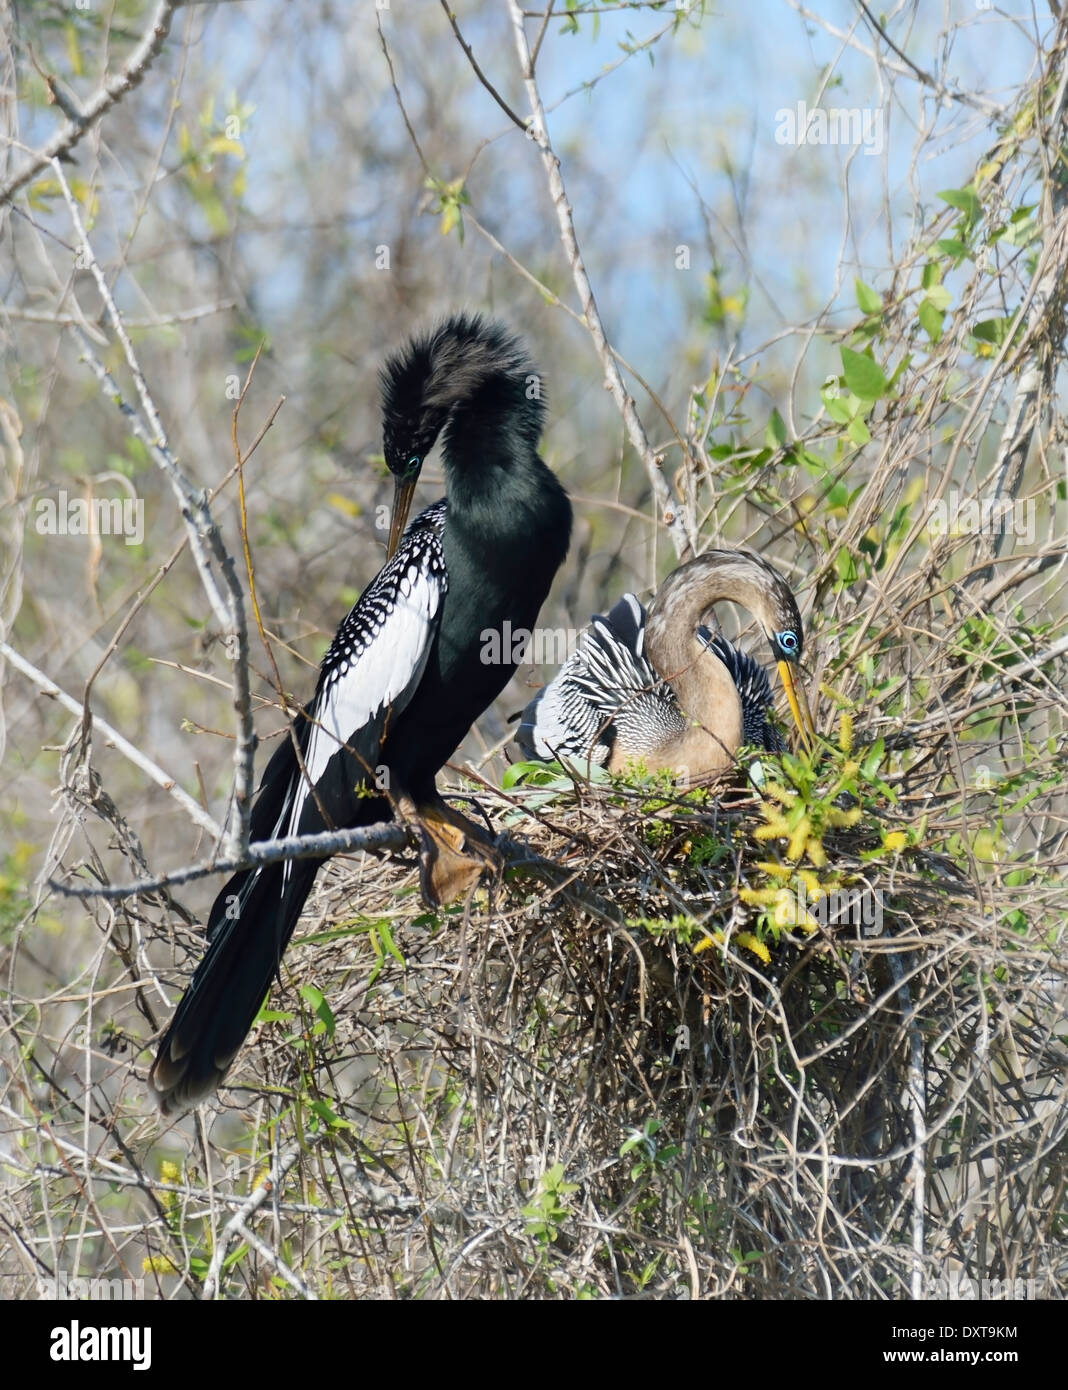 Male And Female Anhinga Birds In The Nest - Stock Image